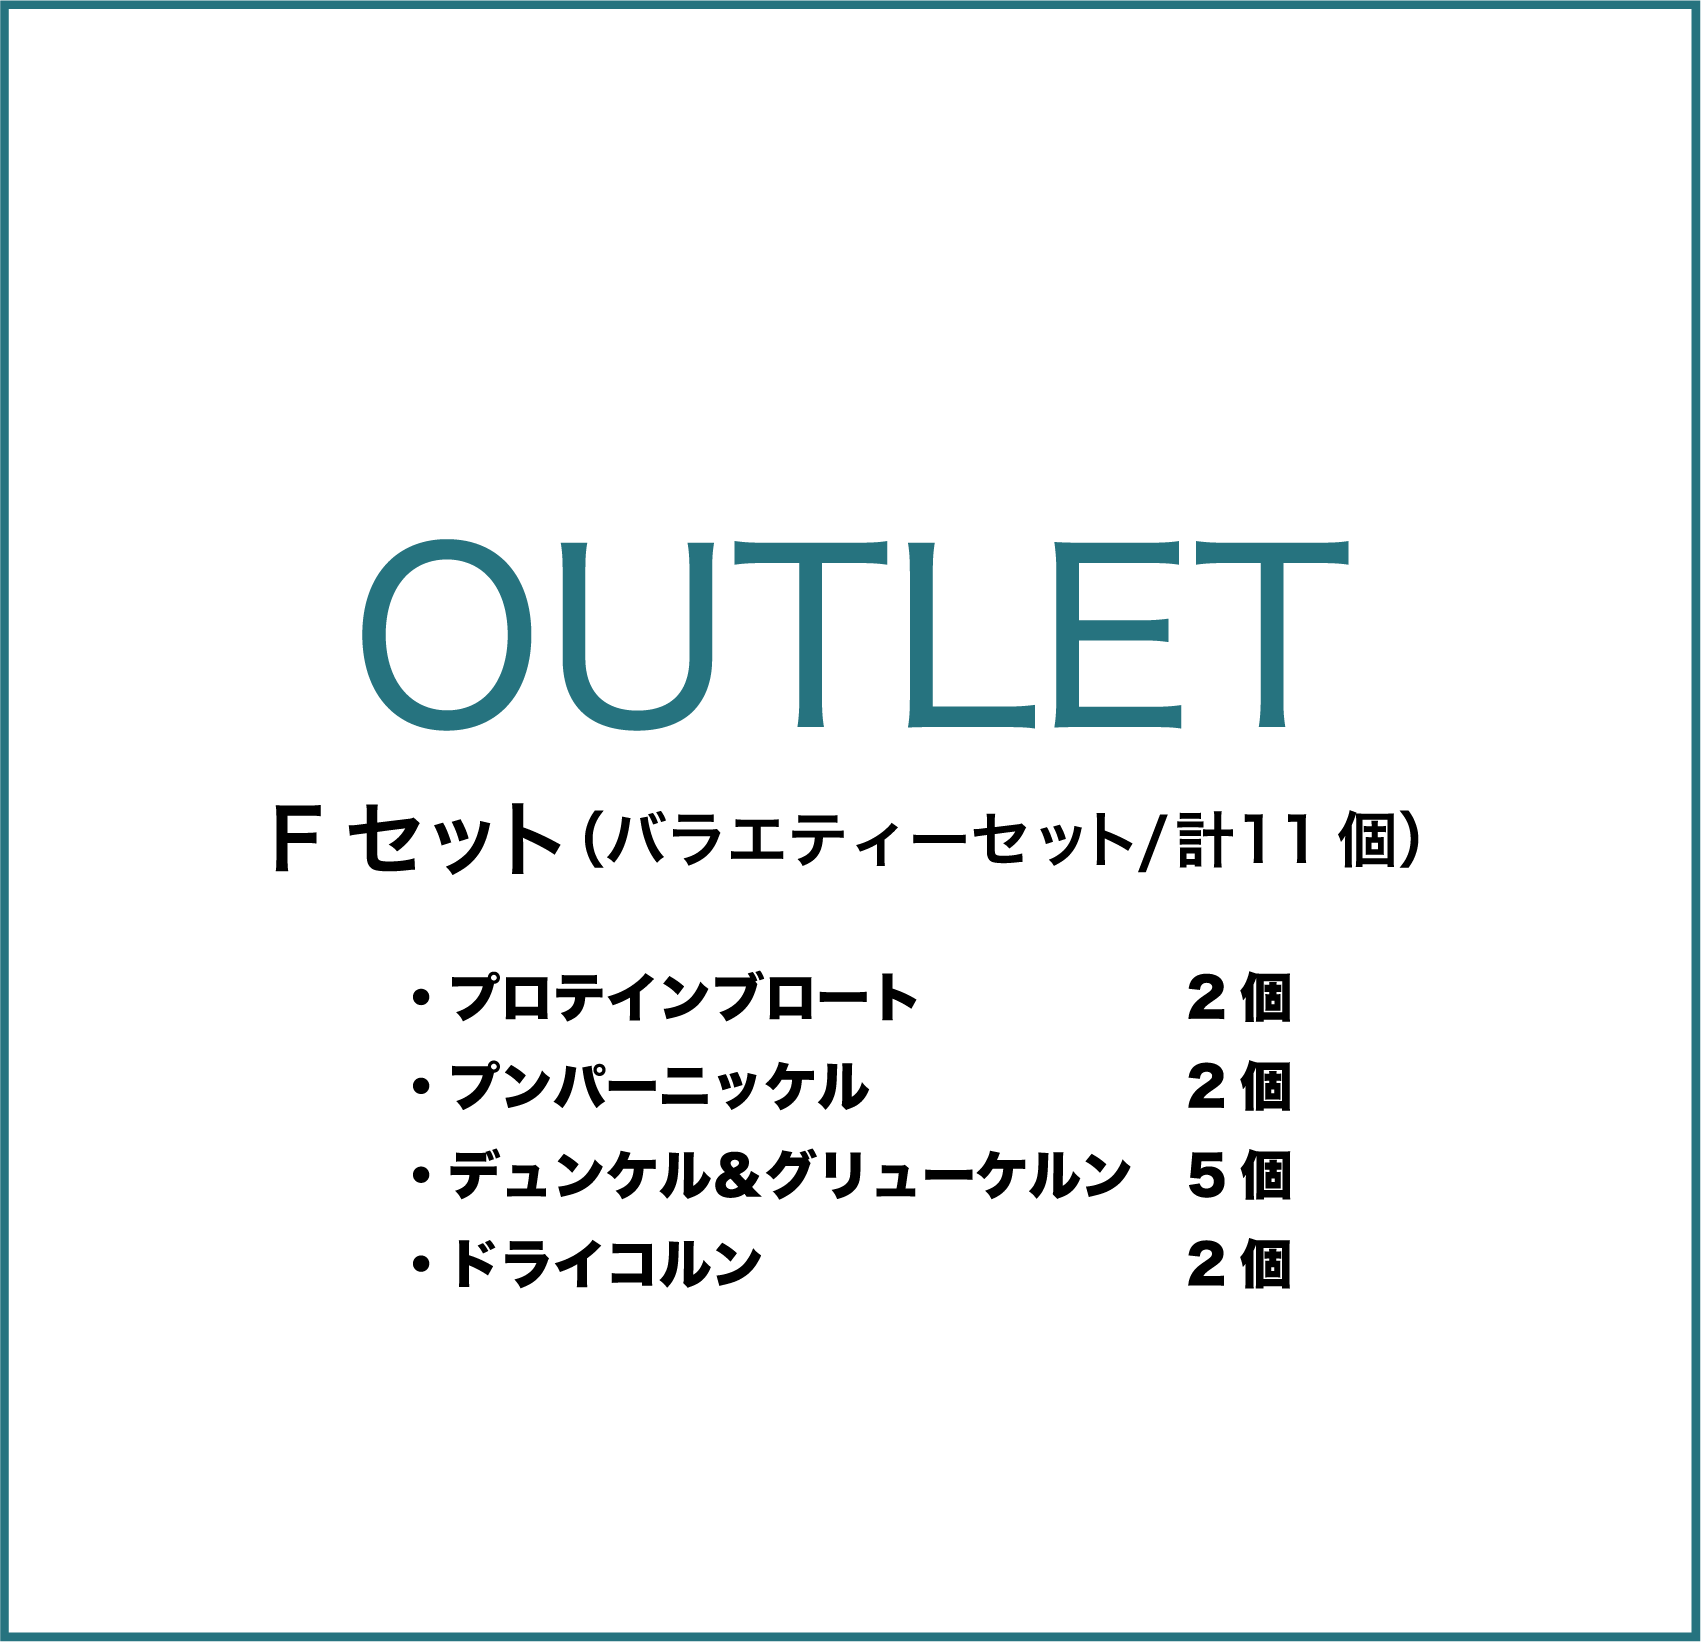 OUTLET_F